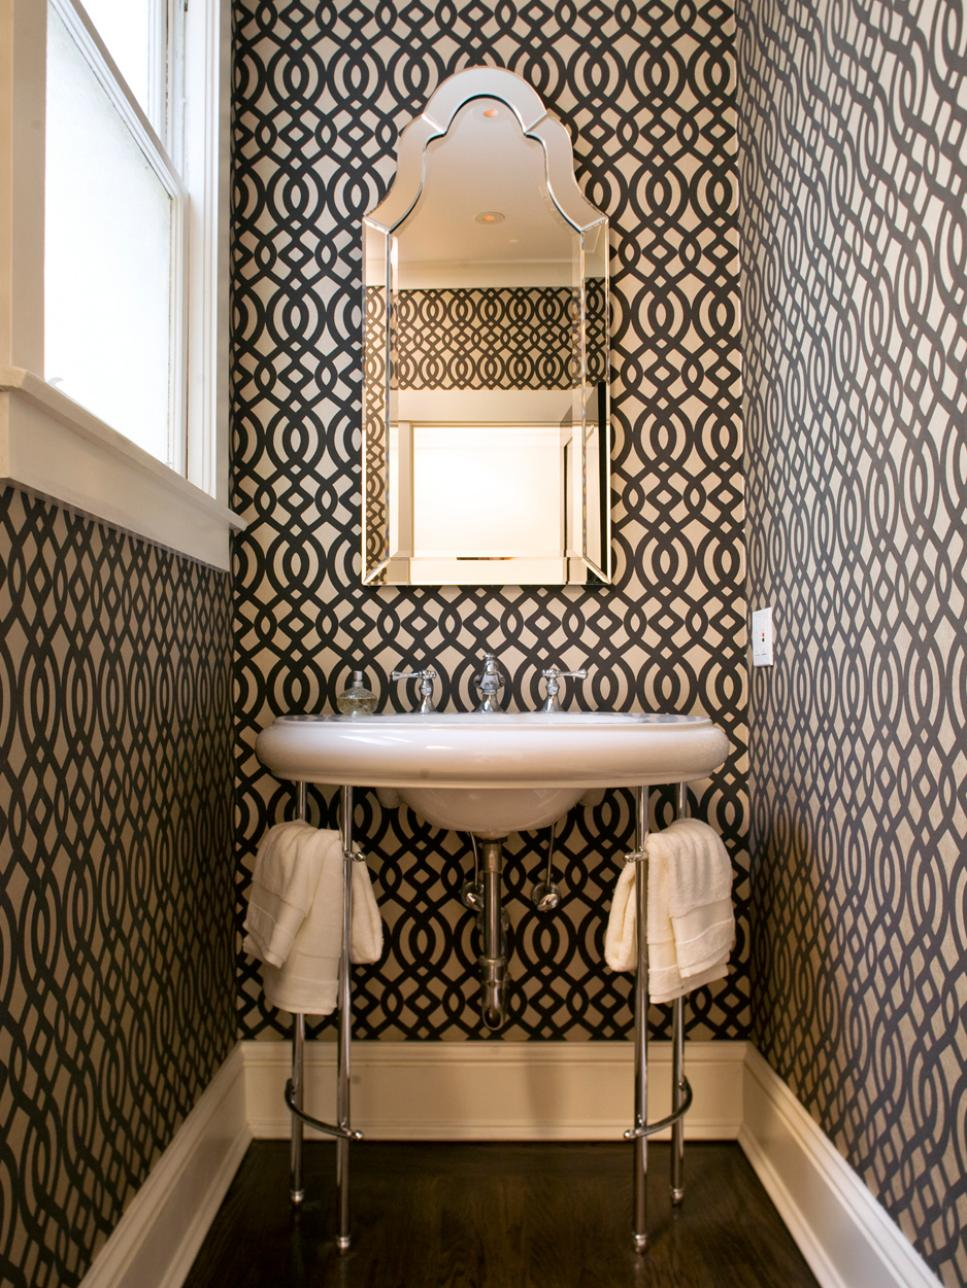 Best bathroom designer 20 small bathroom design ideas | hgtv rrxobms